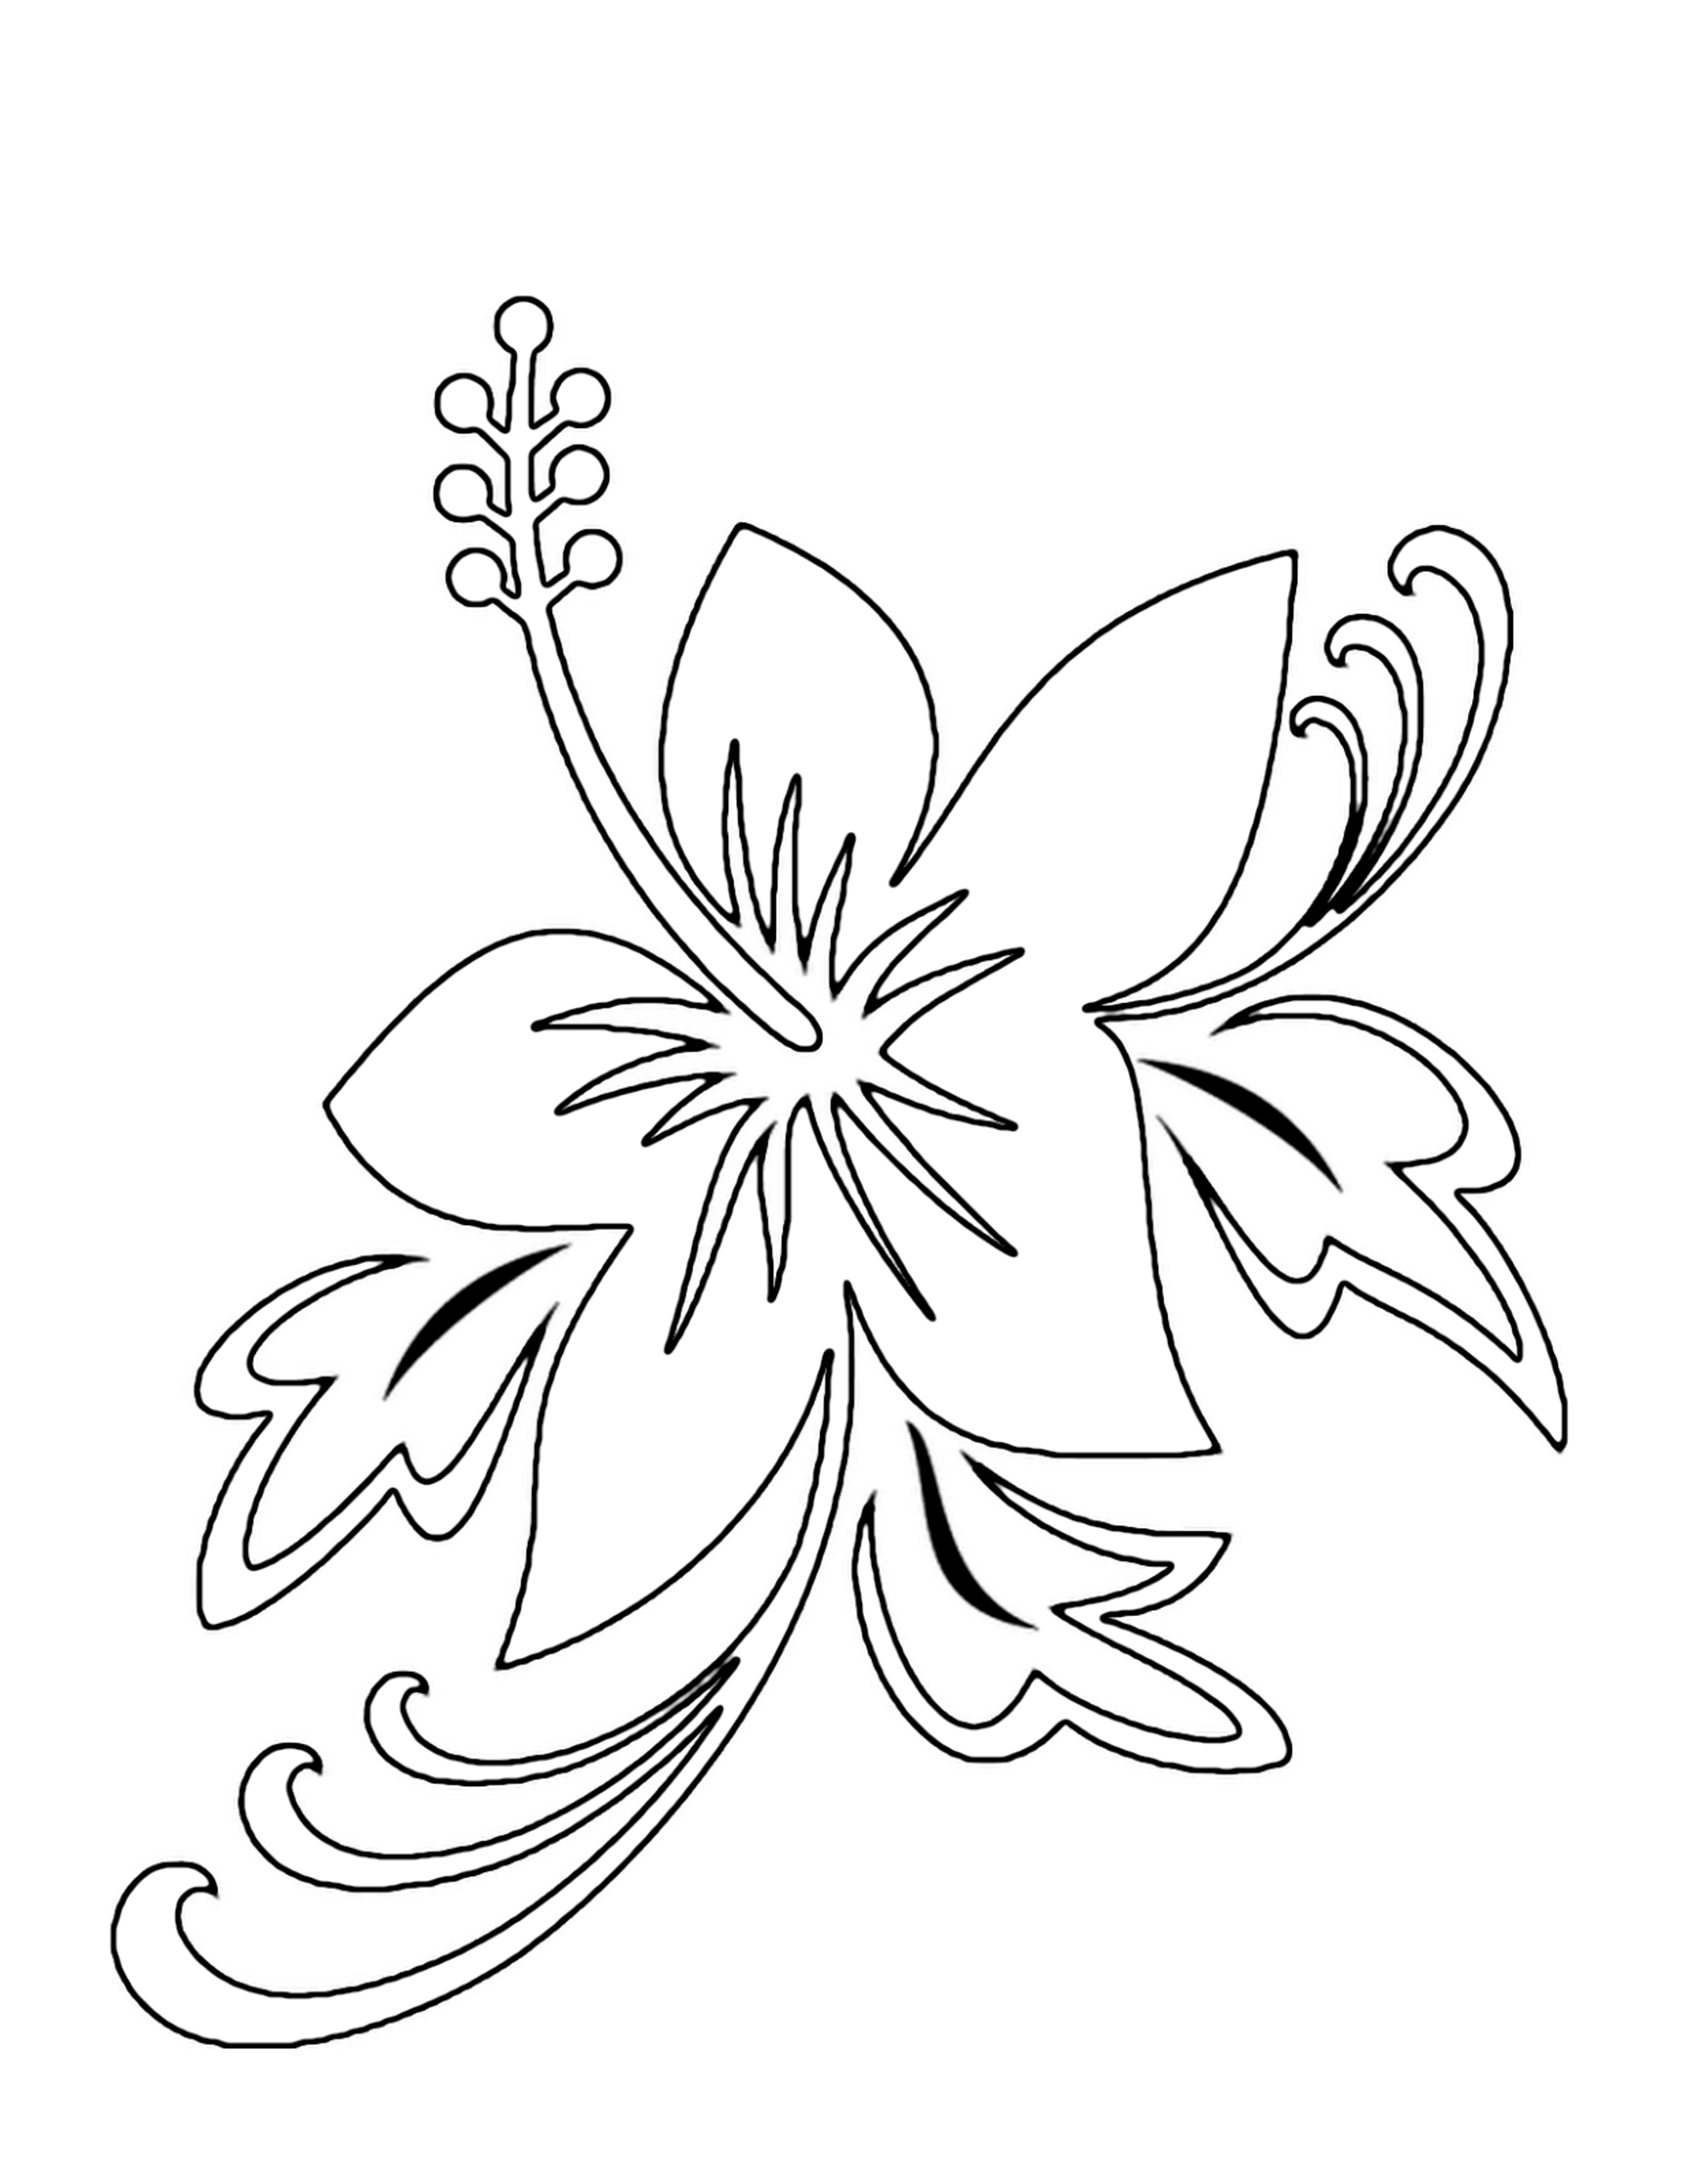 free printable coloring pages of flowers free printable flower coloring pages coloring home pages flowers of free printable coloring